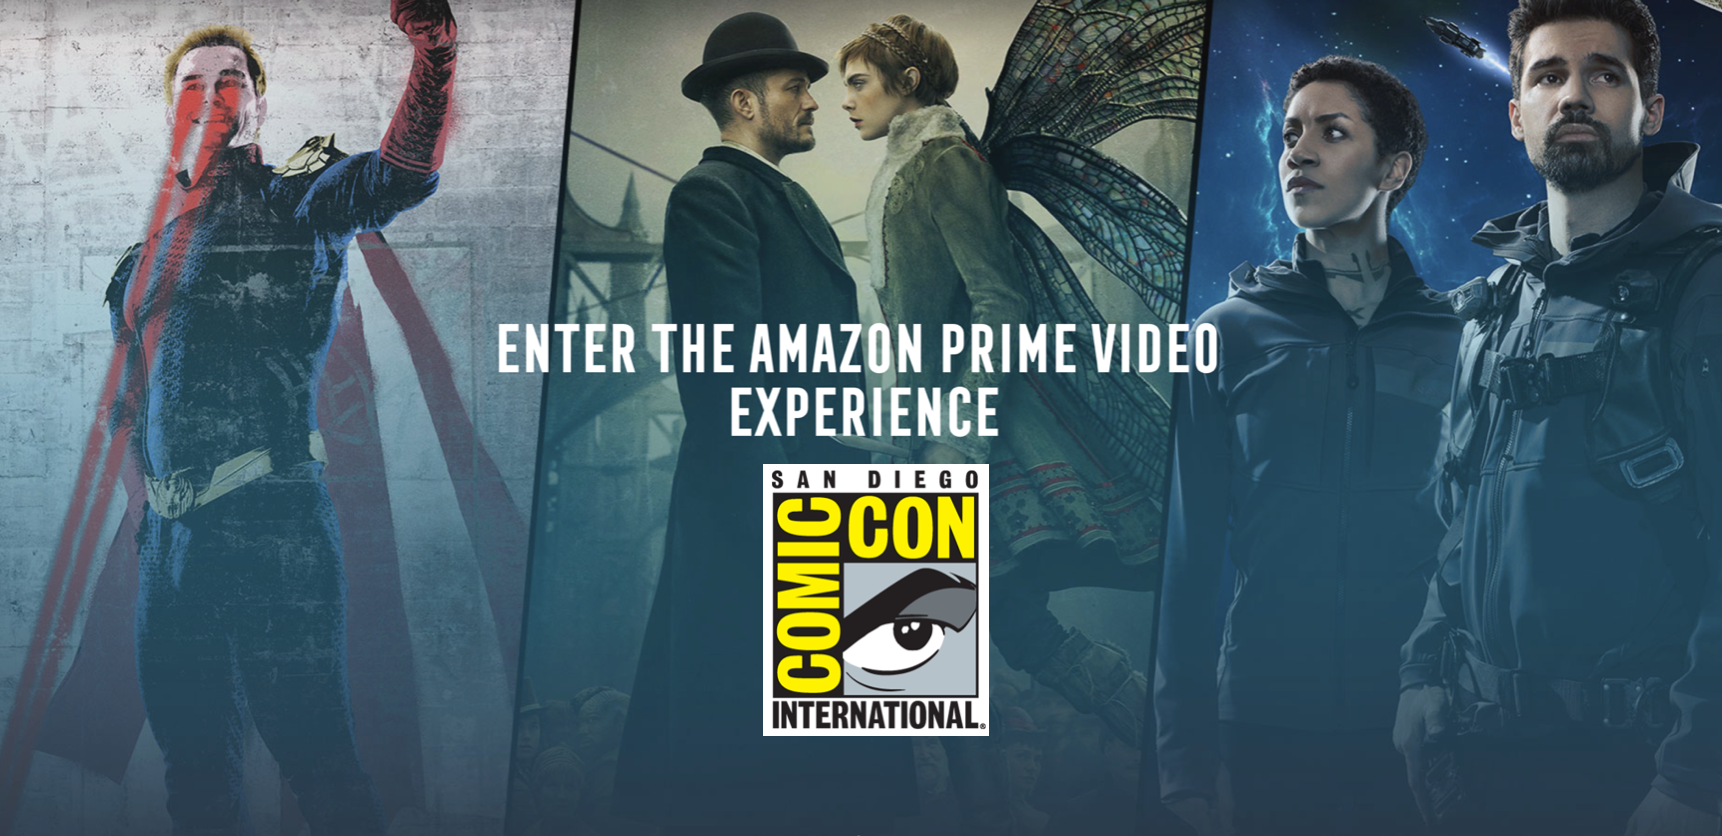 Prime Video Brings Panels, Parties and Can't Miss Experiences of Amazon Original's to SDCC!